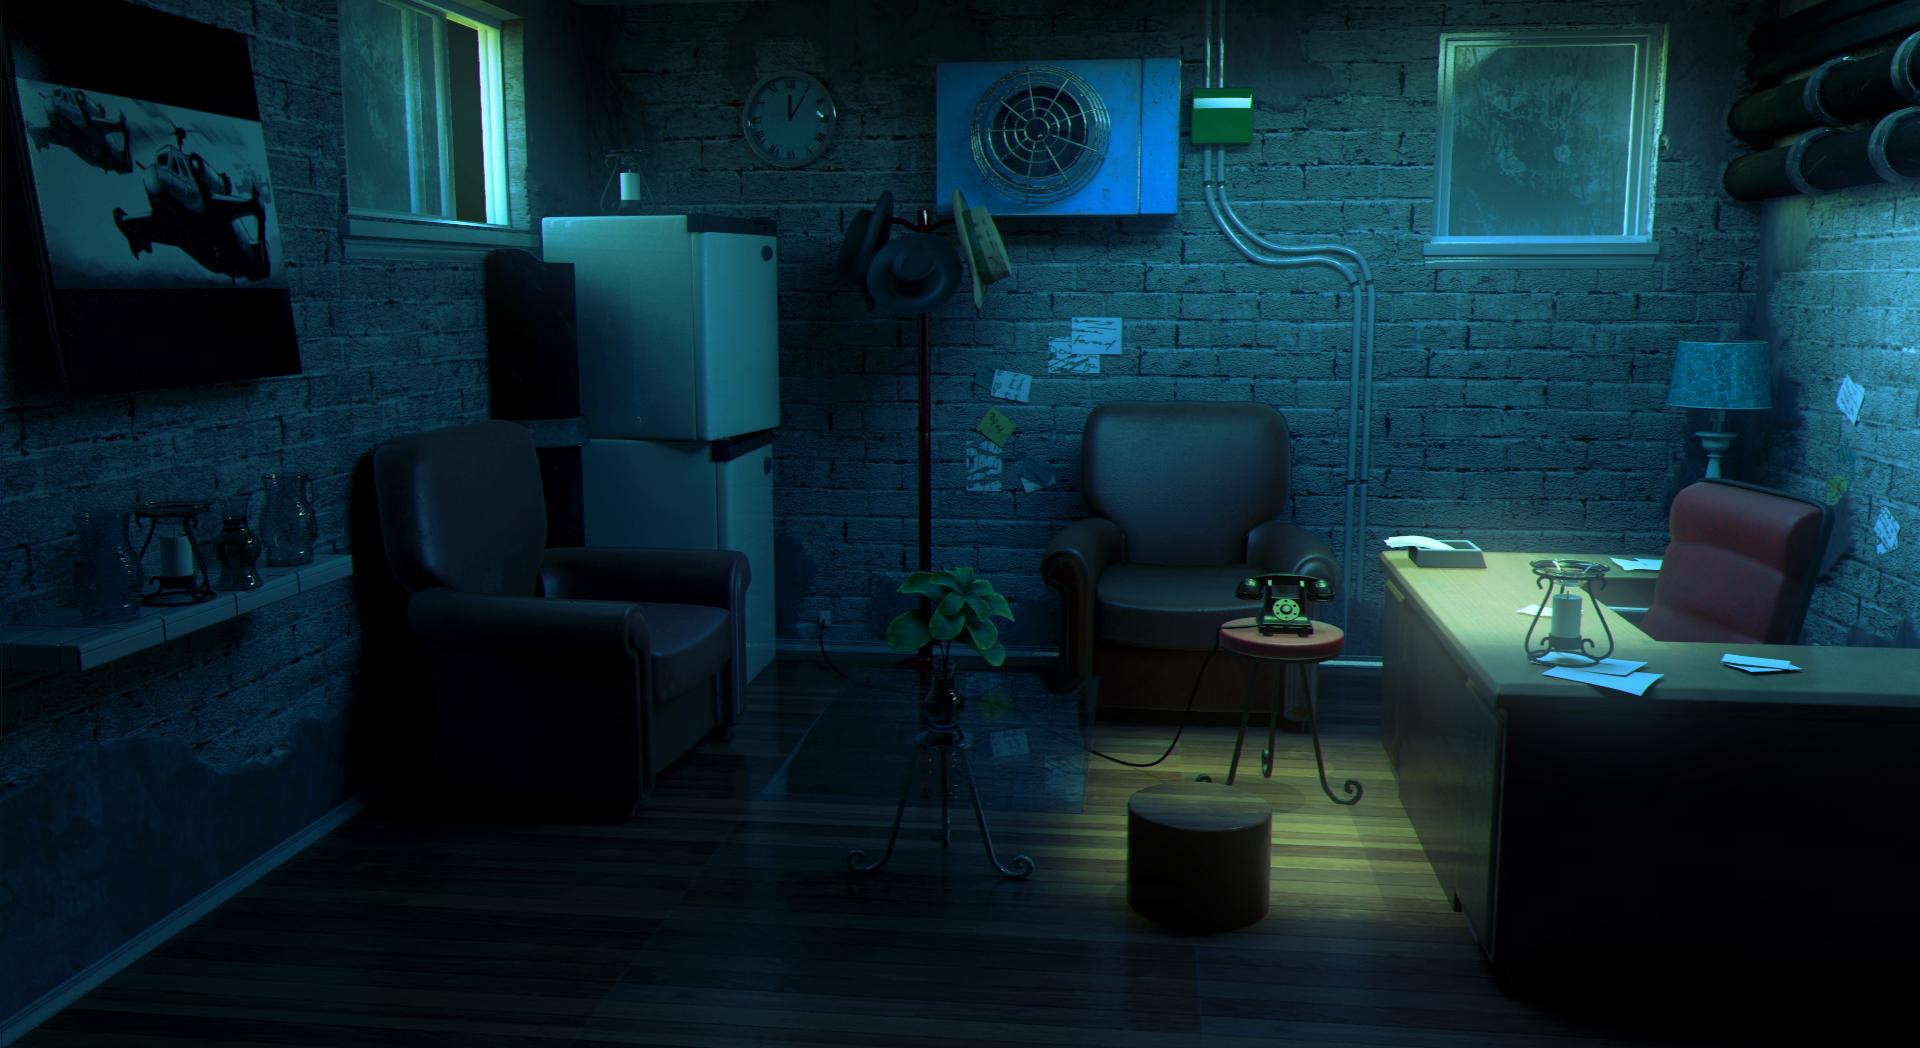 Room_twilight_final